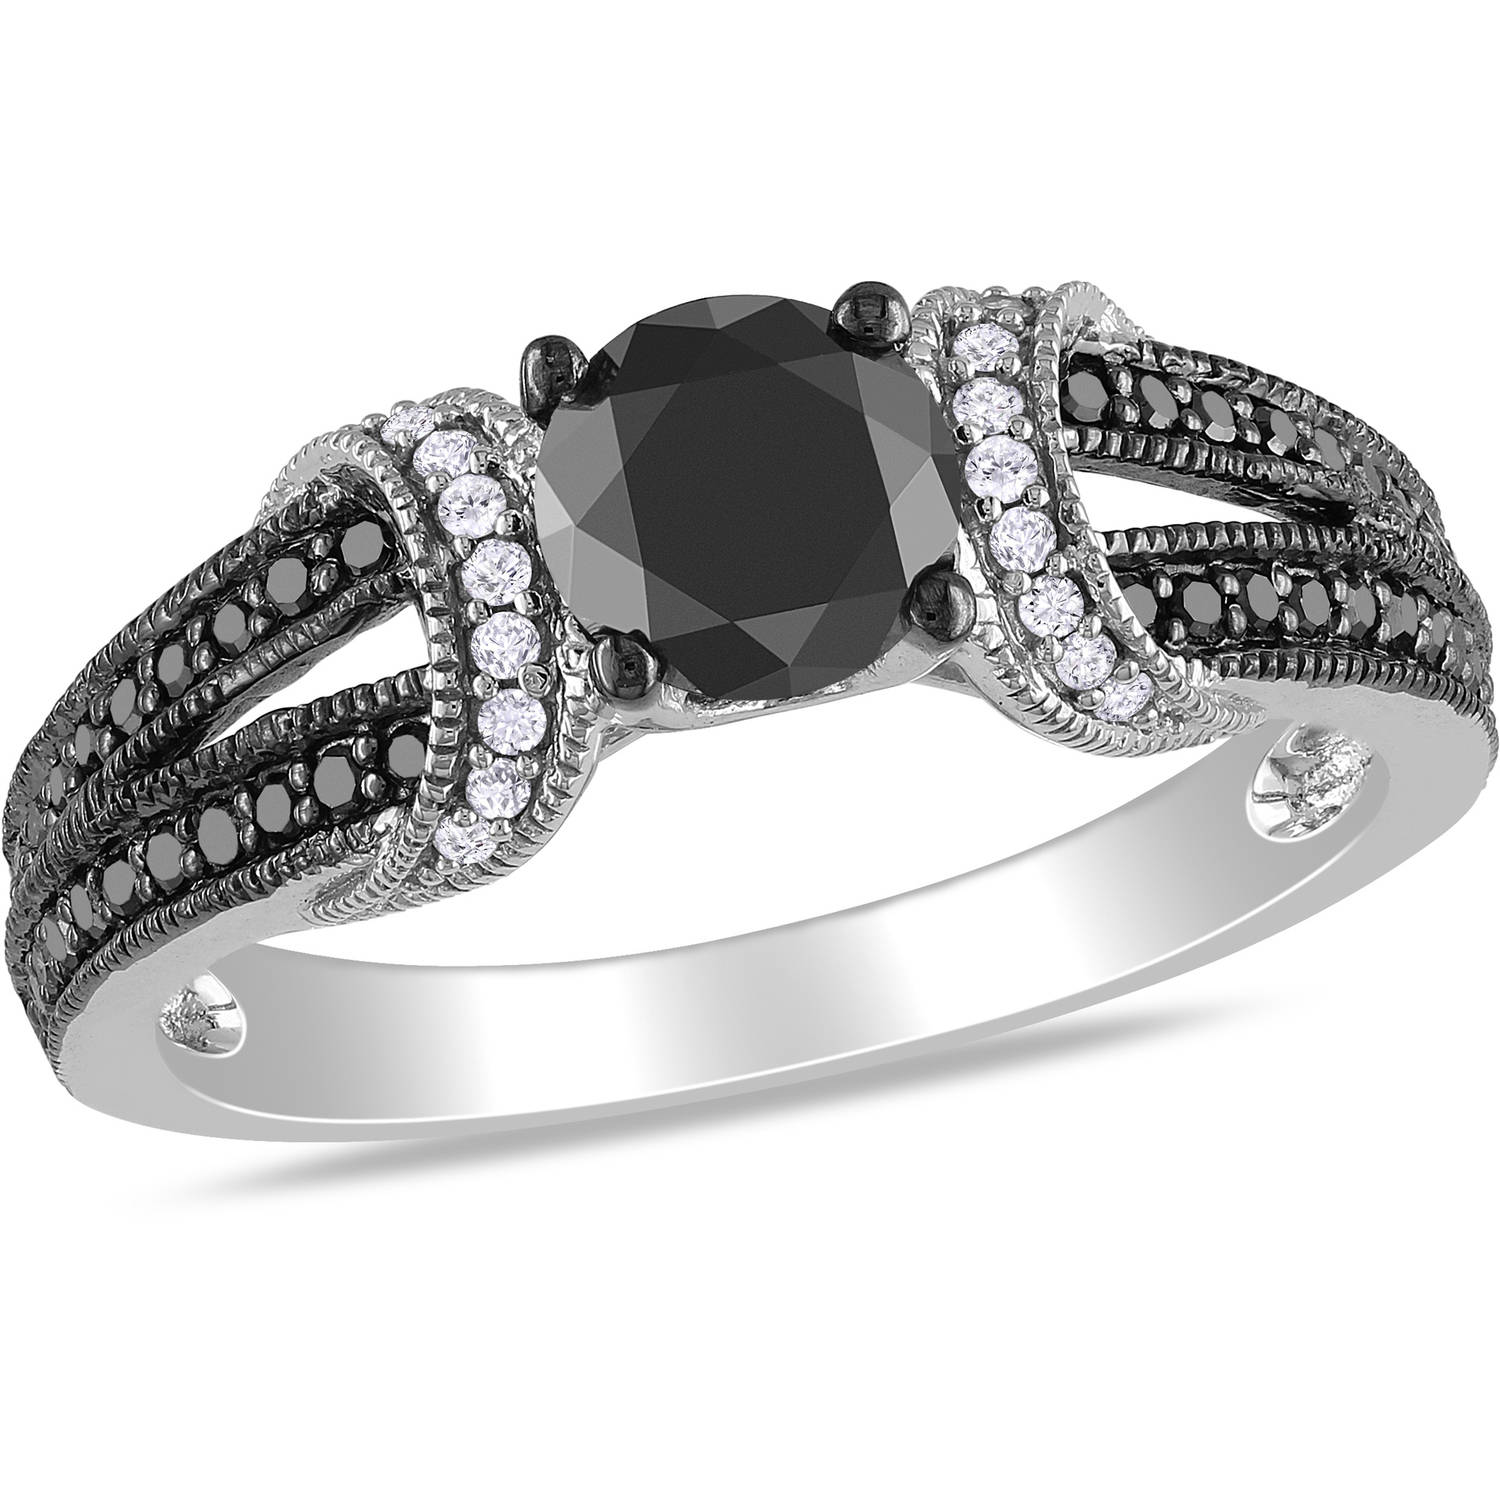 1 Carat T.W. Black and White Diamond Fashion Ring in Sterling Silver (5.5mm and 0.9mm)